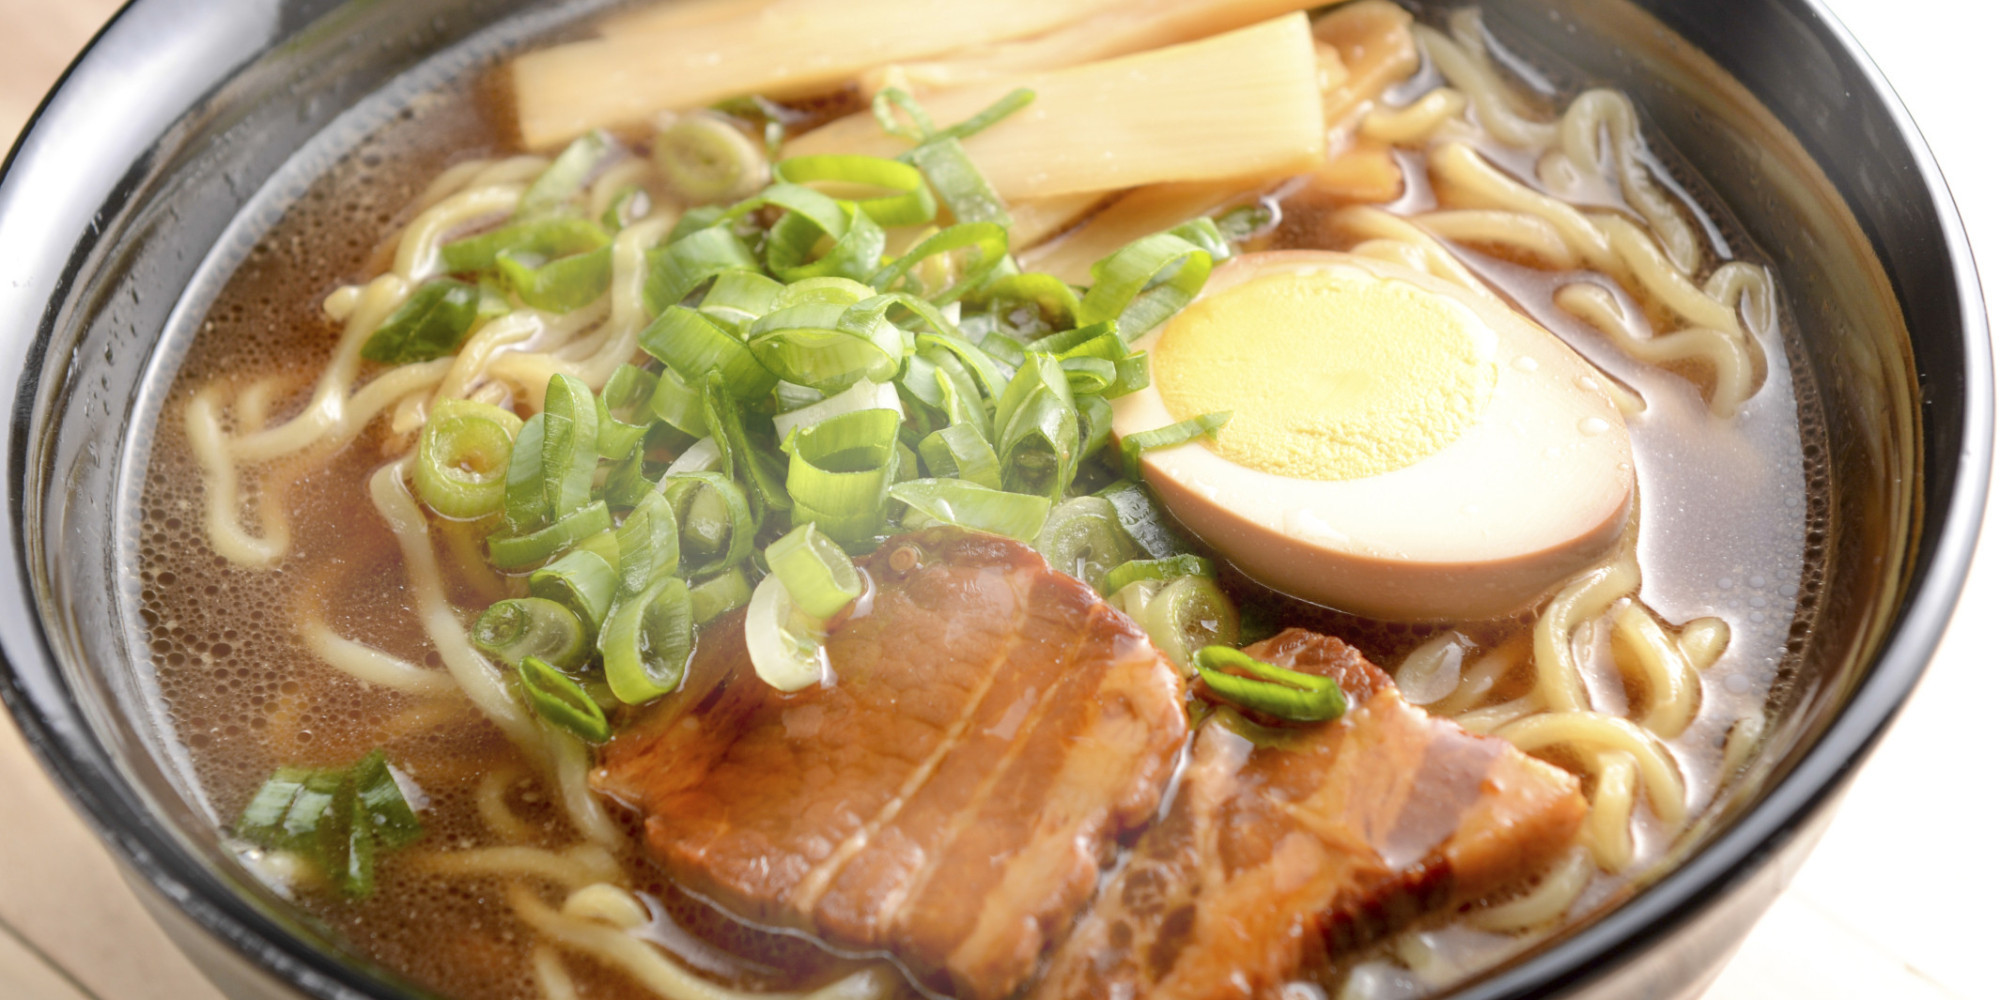 Are Ramen Noodles Unhealthy  So Just How Bad Is Ramen For You Anyway